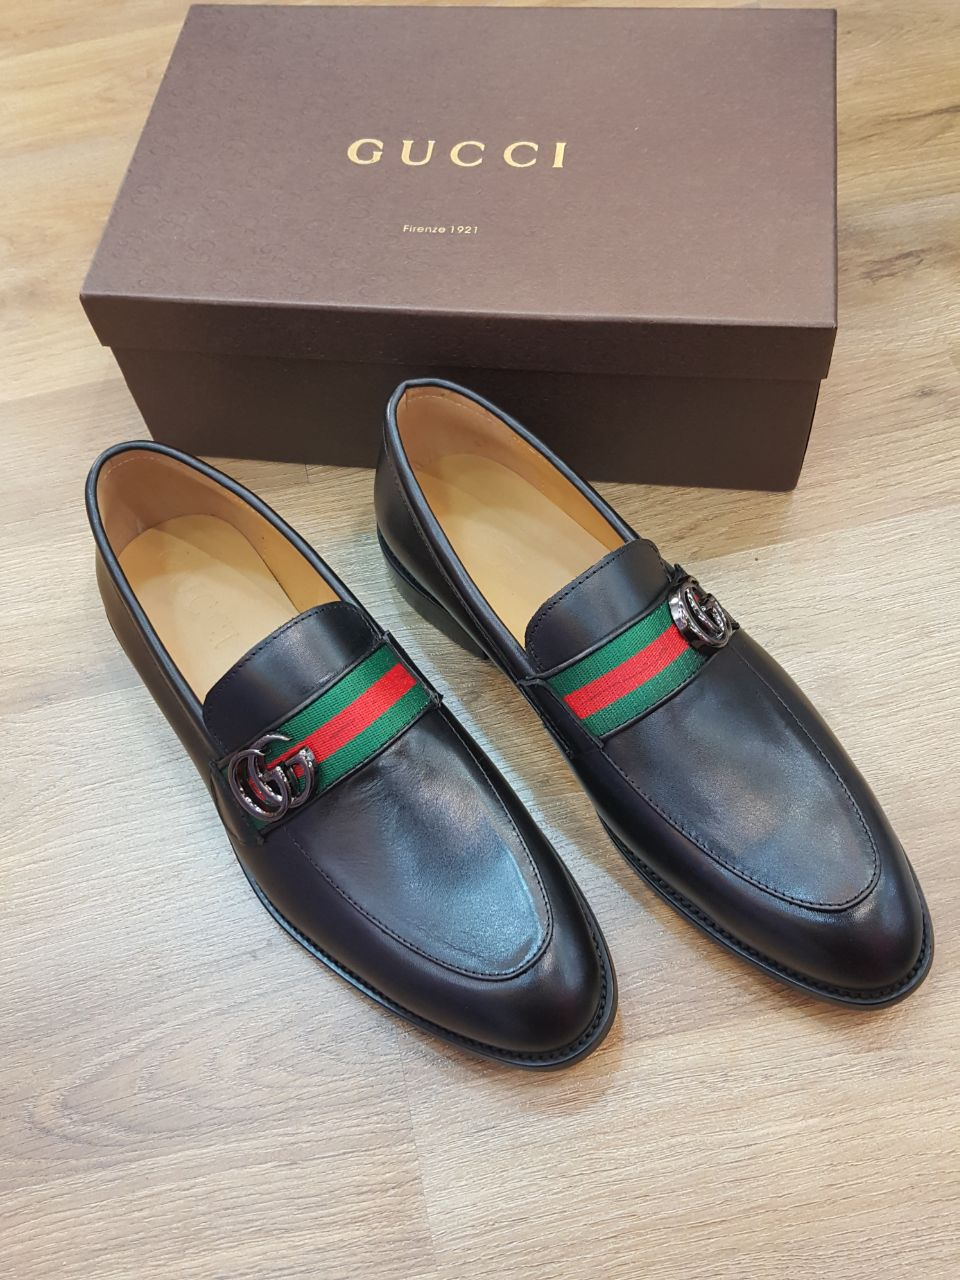 0d118f26a Gucci Men Shoes Full Black Color